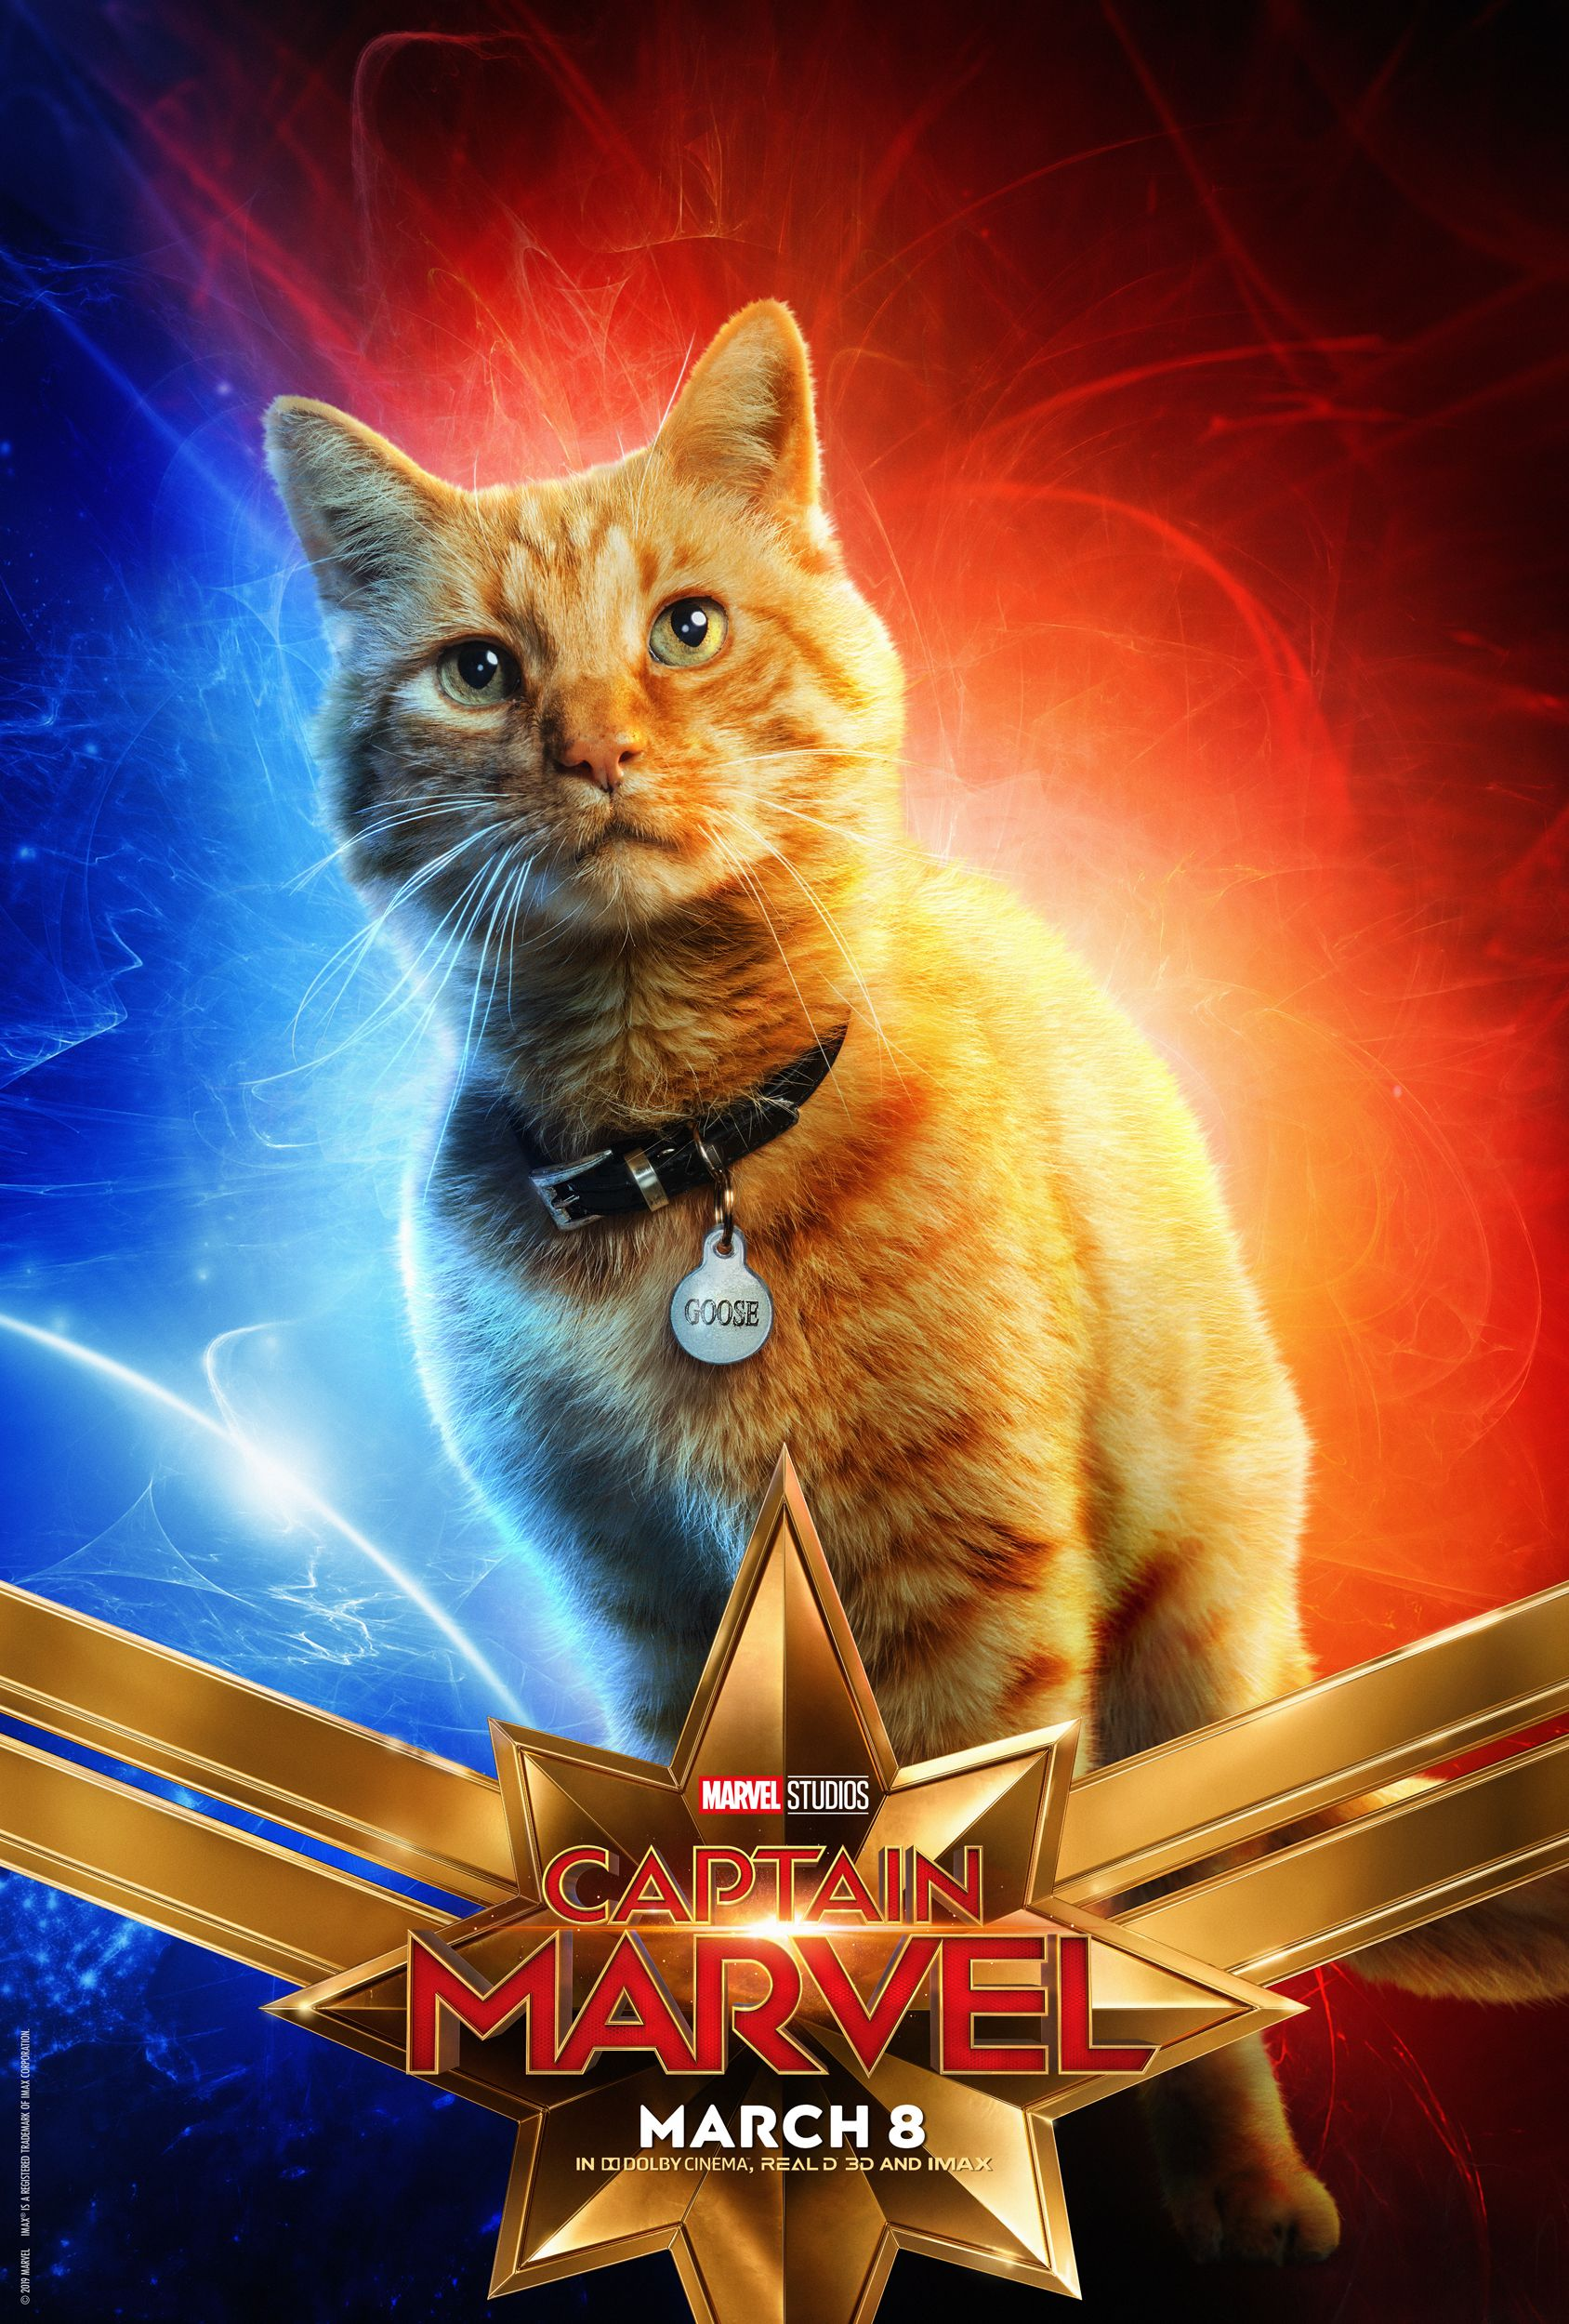 captain marvel's goose the cat explained: what is a flerken